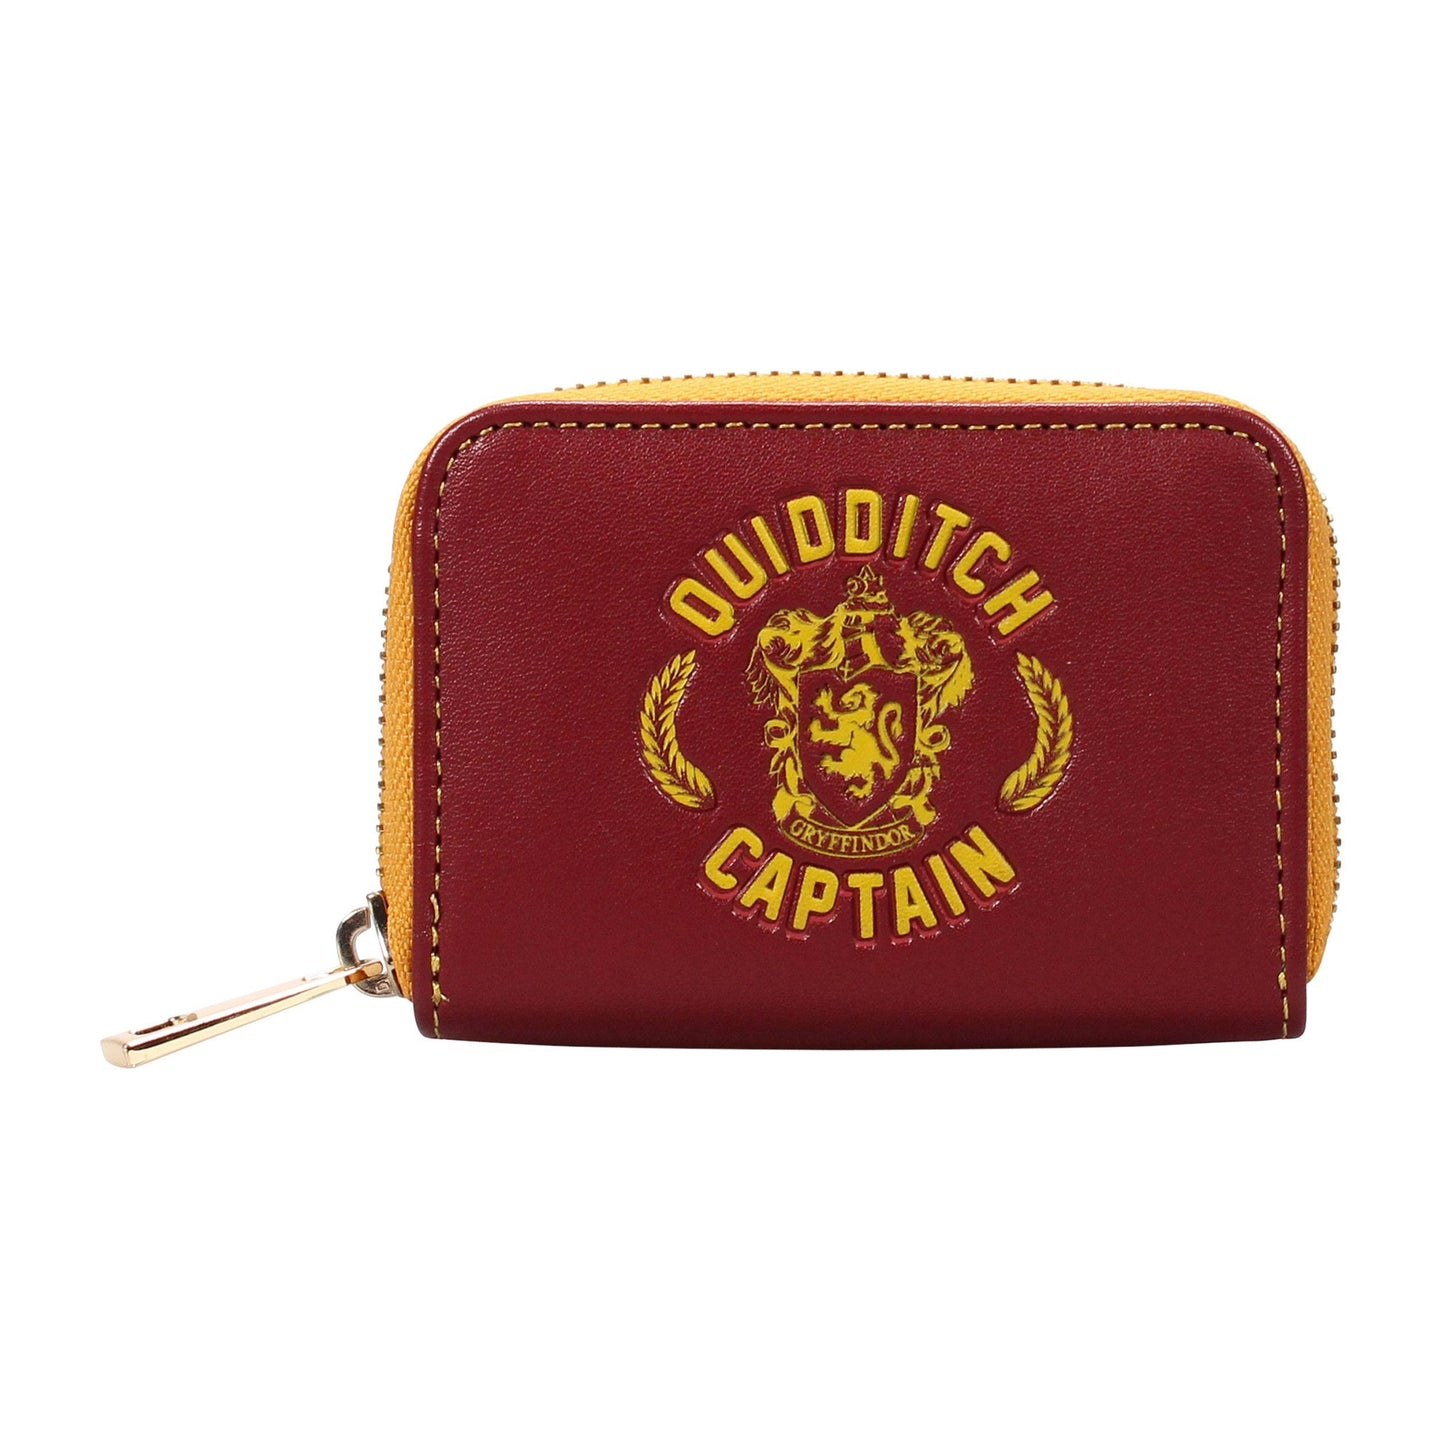 Harry Potter monedero Mini Quidditch Captain